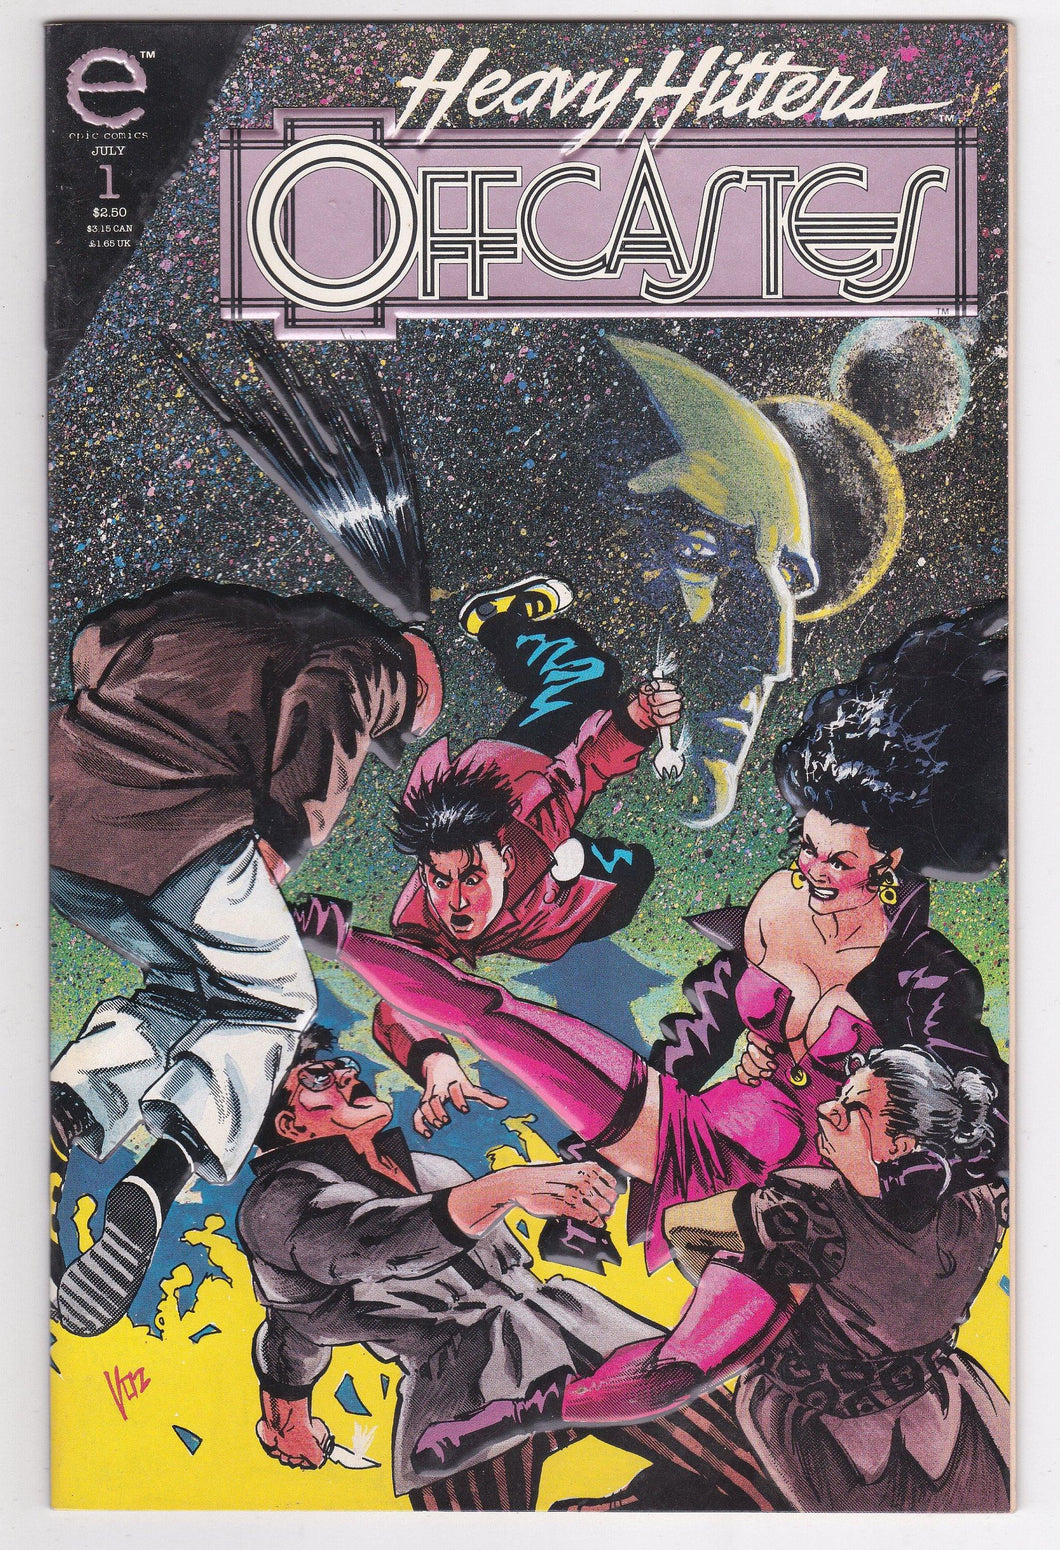 Offcastes Heavy Hitters Issue no 1 Epic Comics July 1993 Comic Book